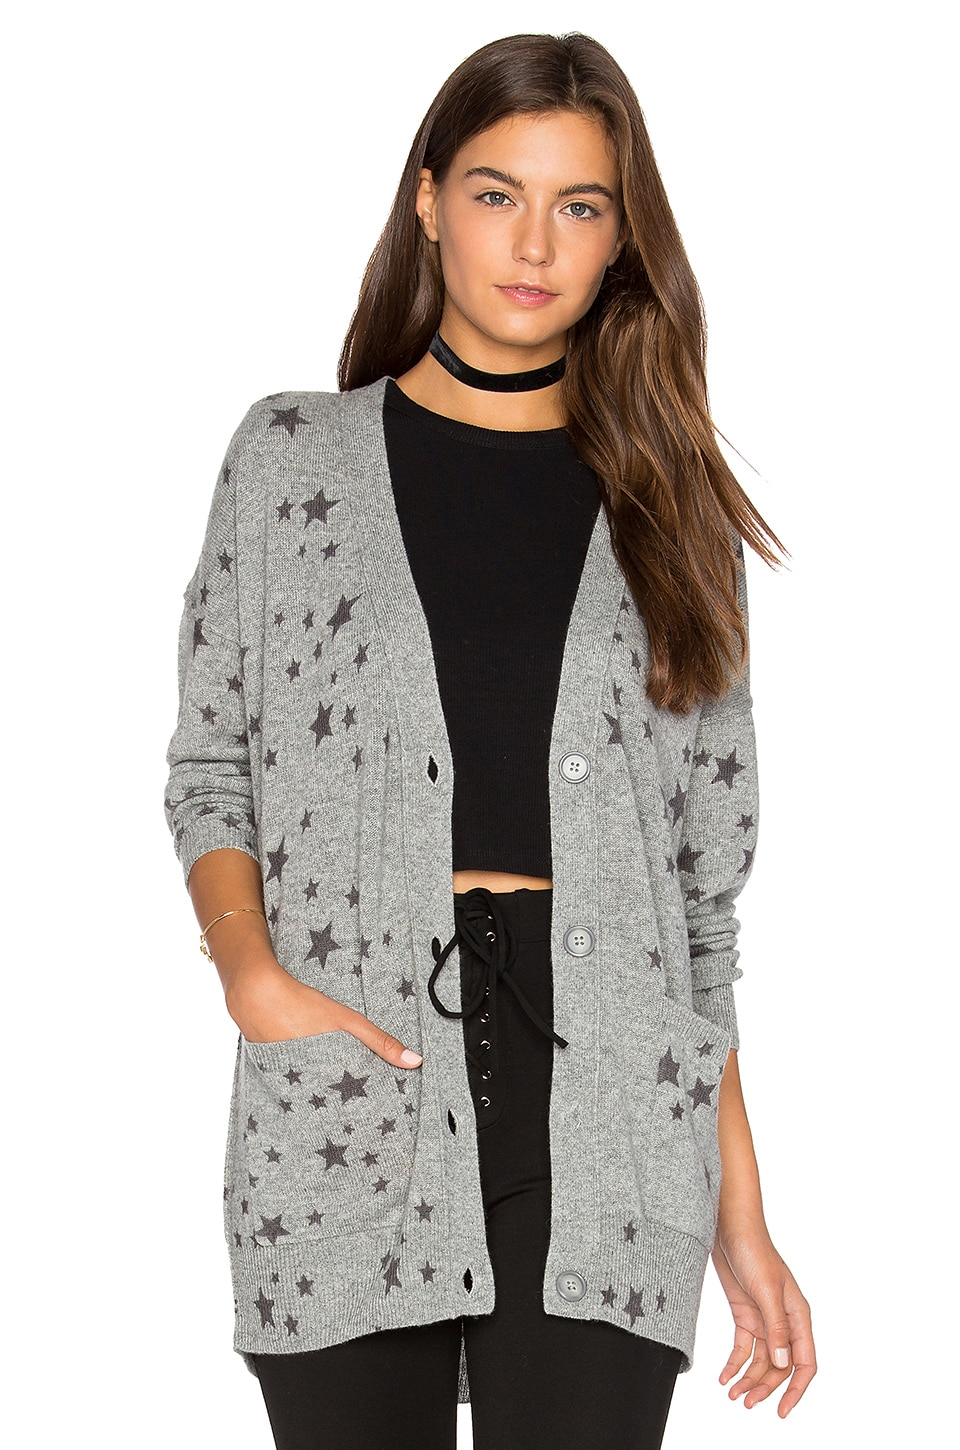 27 miles malibu Starry Oversized Cardigan in Pewter | REVOLVE